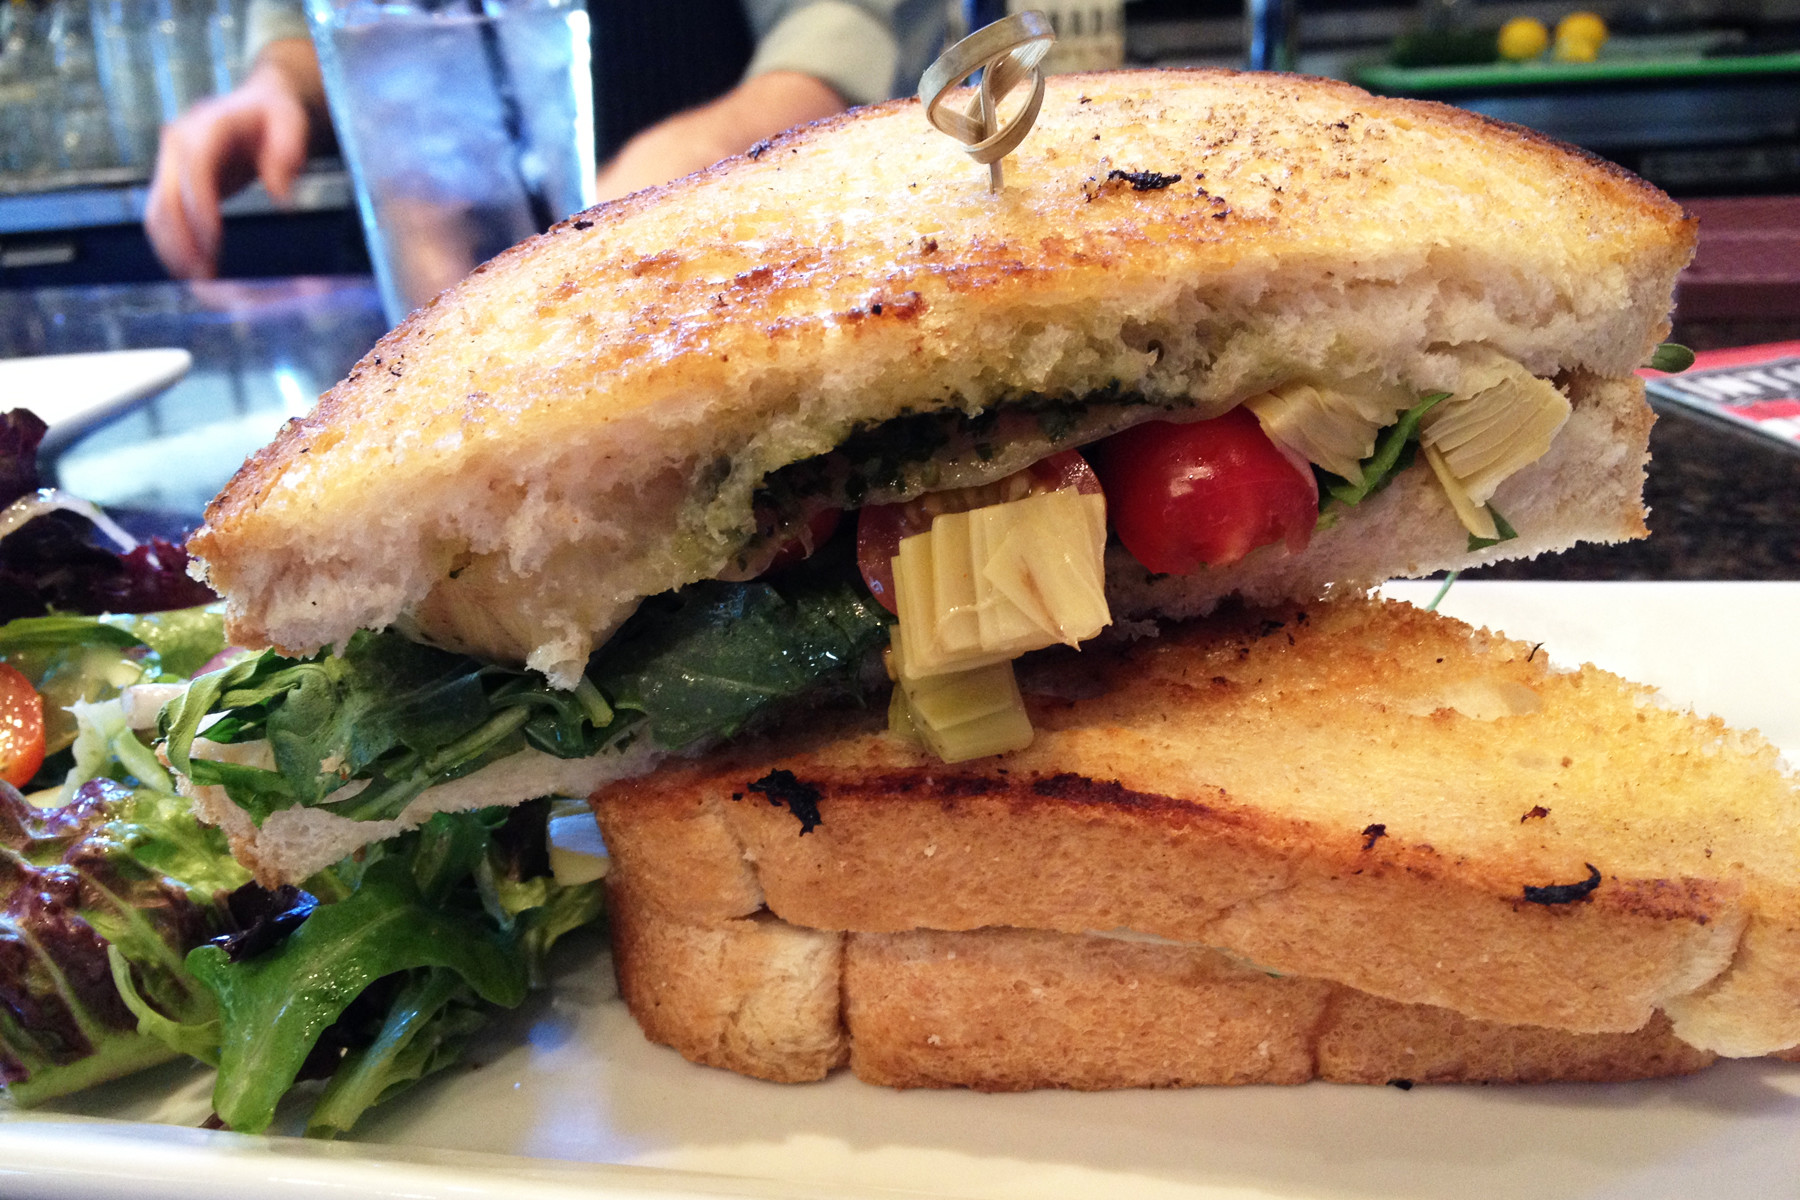 The Melt is slathered with basil pesto, artichoke hearts, grape tomatoes, peppery arugula and melted provolone pressed between two slices of buttered toast, accompanied by your choice of salad or fries.